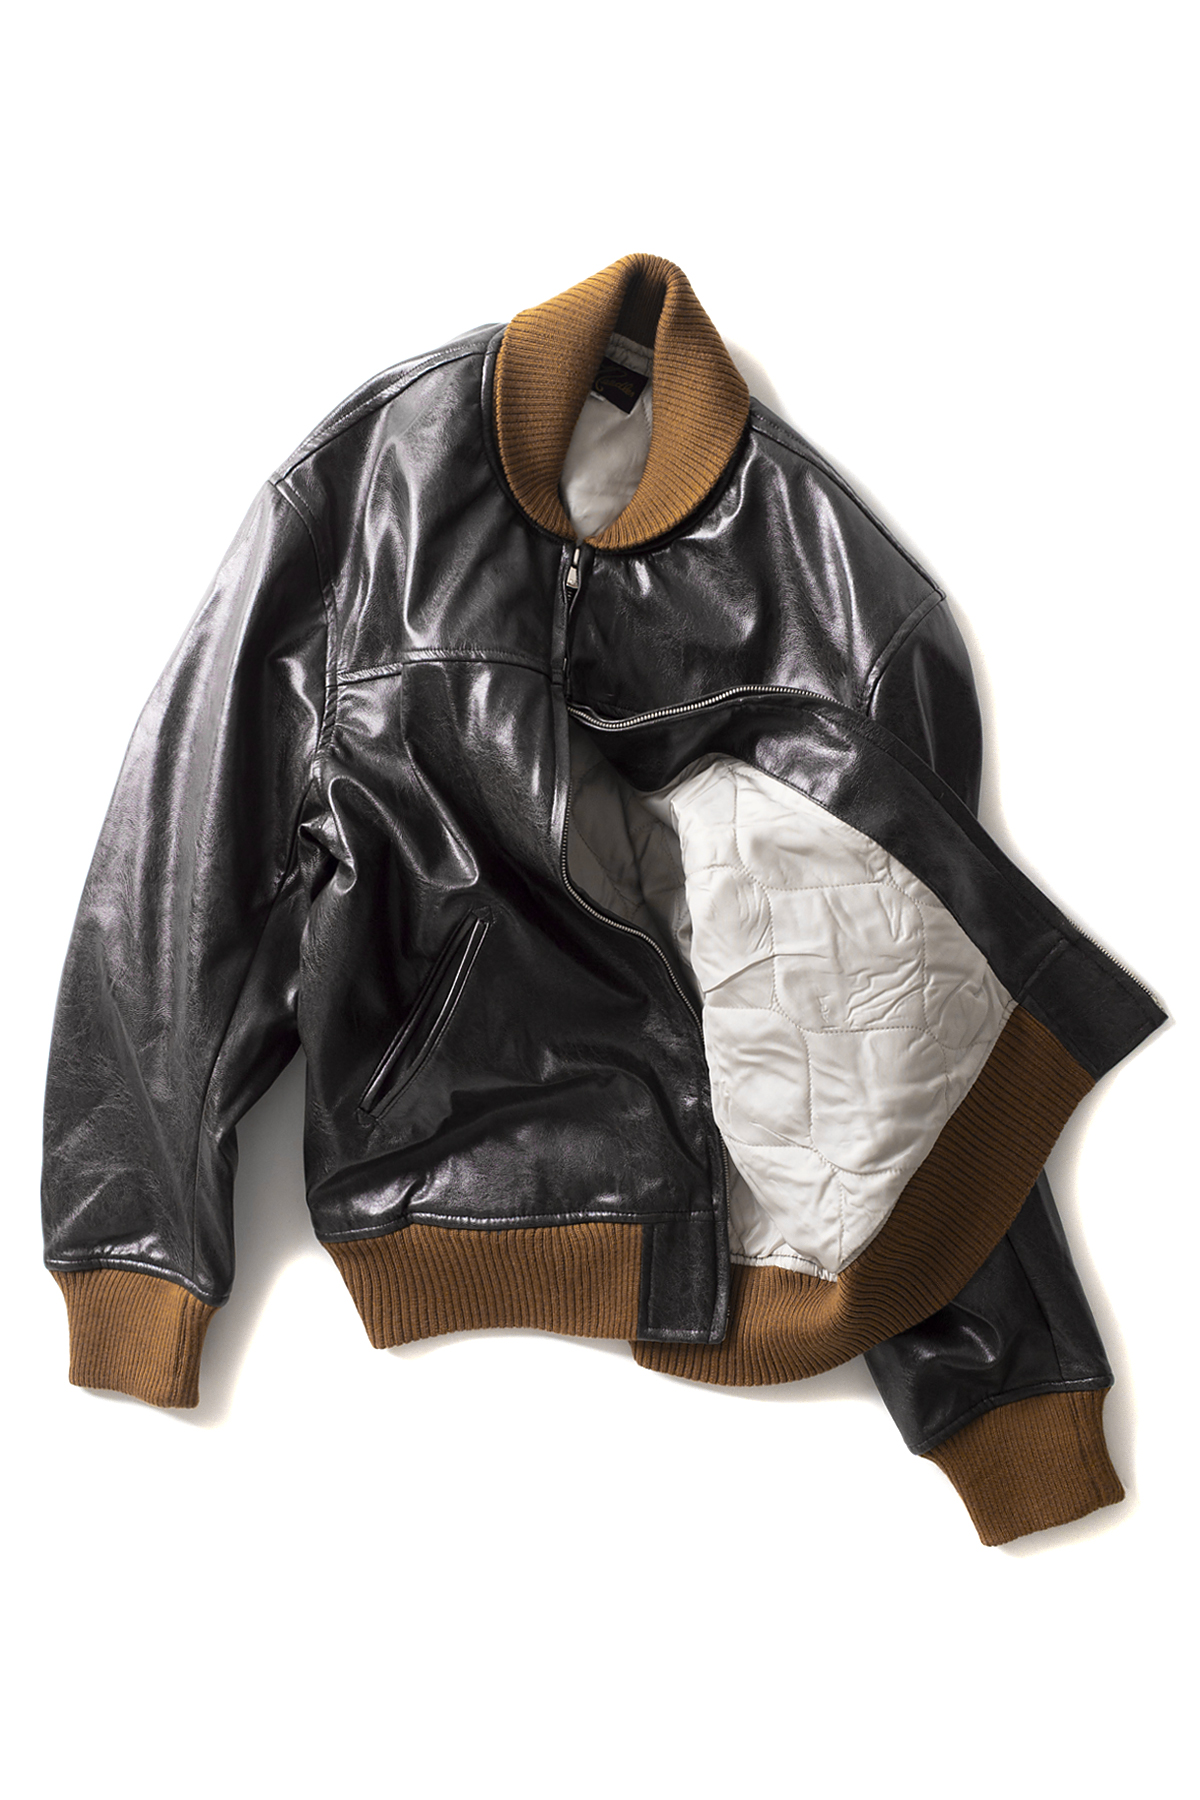 NEEDLES : Synthetic Leather G-1 Jacket (Brown)